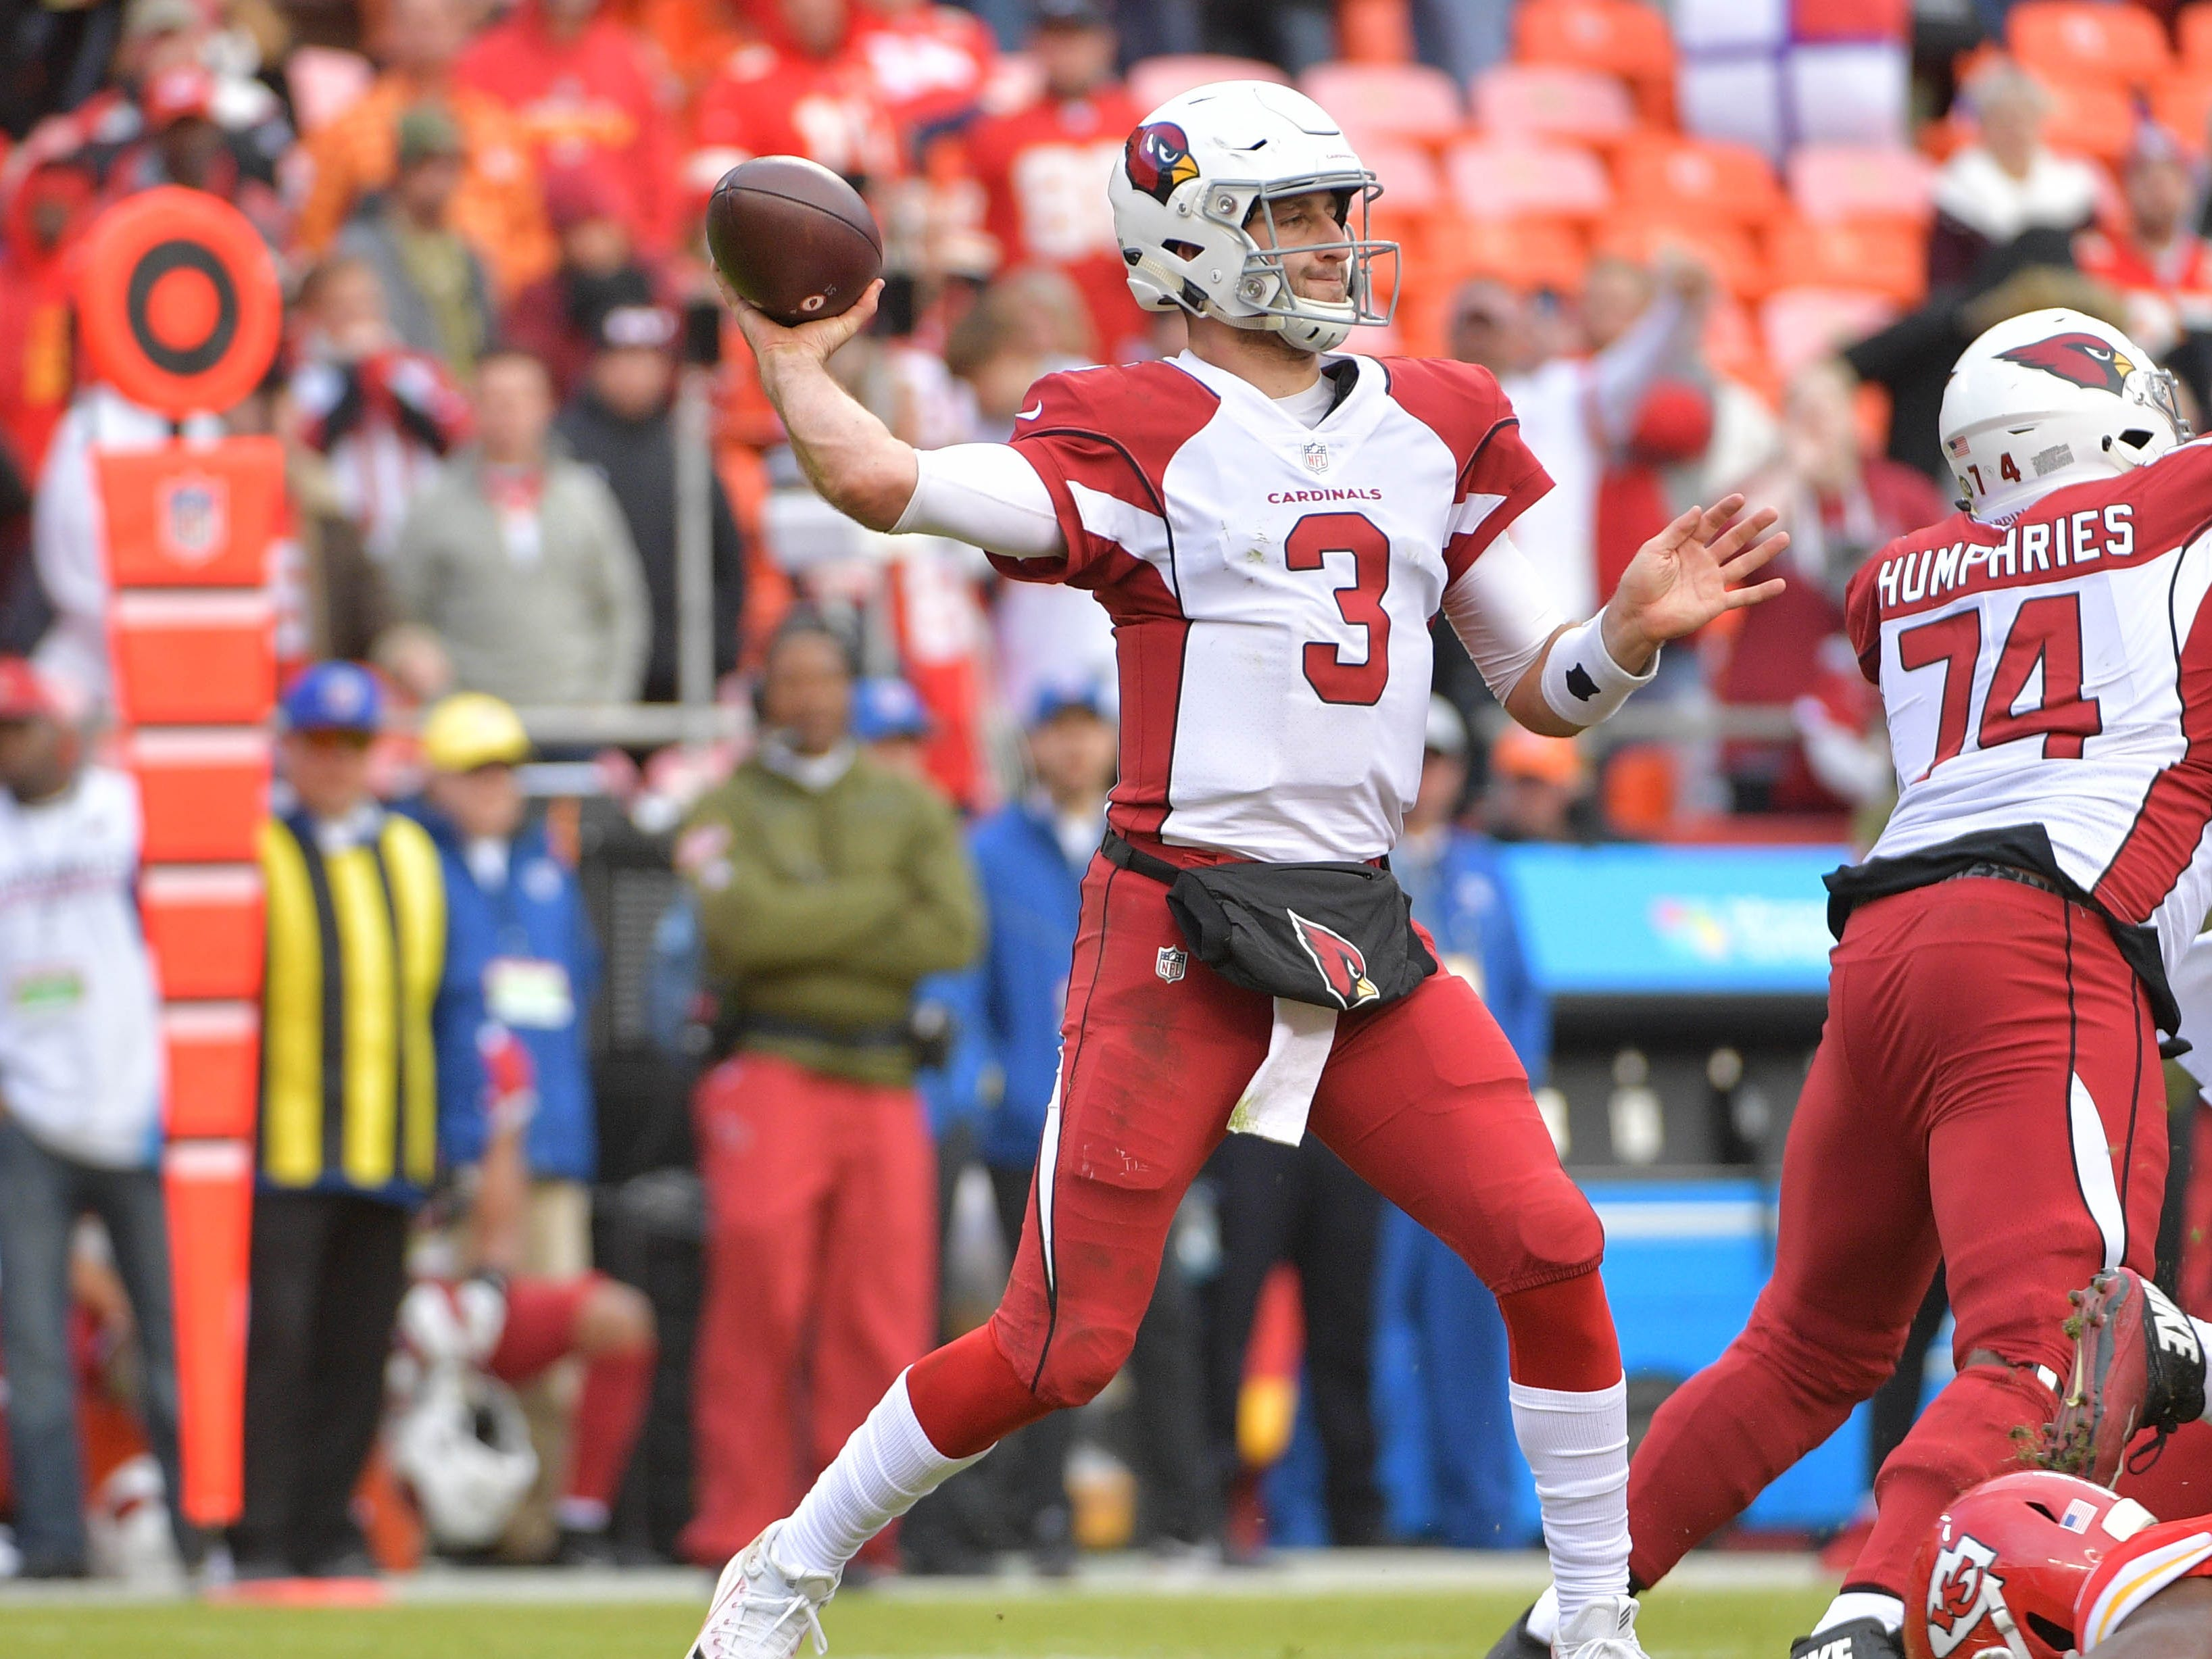 Nov 11, 2018; Kansas City, MO, USA; Arizona Cardinals quarterback Josh Rosen (3) throws a pass during the second half against the Kansas City Chiefs at Arrowhead Stadium. The Chiefs won 26-14. Mandatory Credit: Denny Medley-USA TODAY Sports